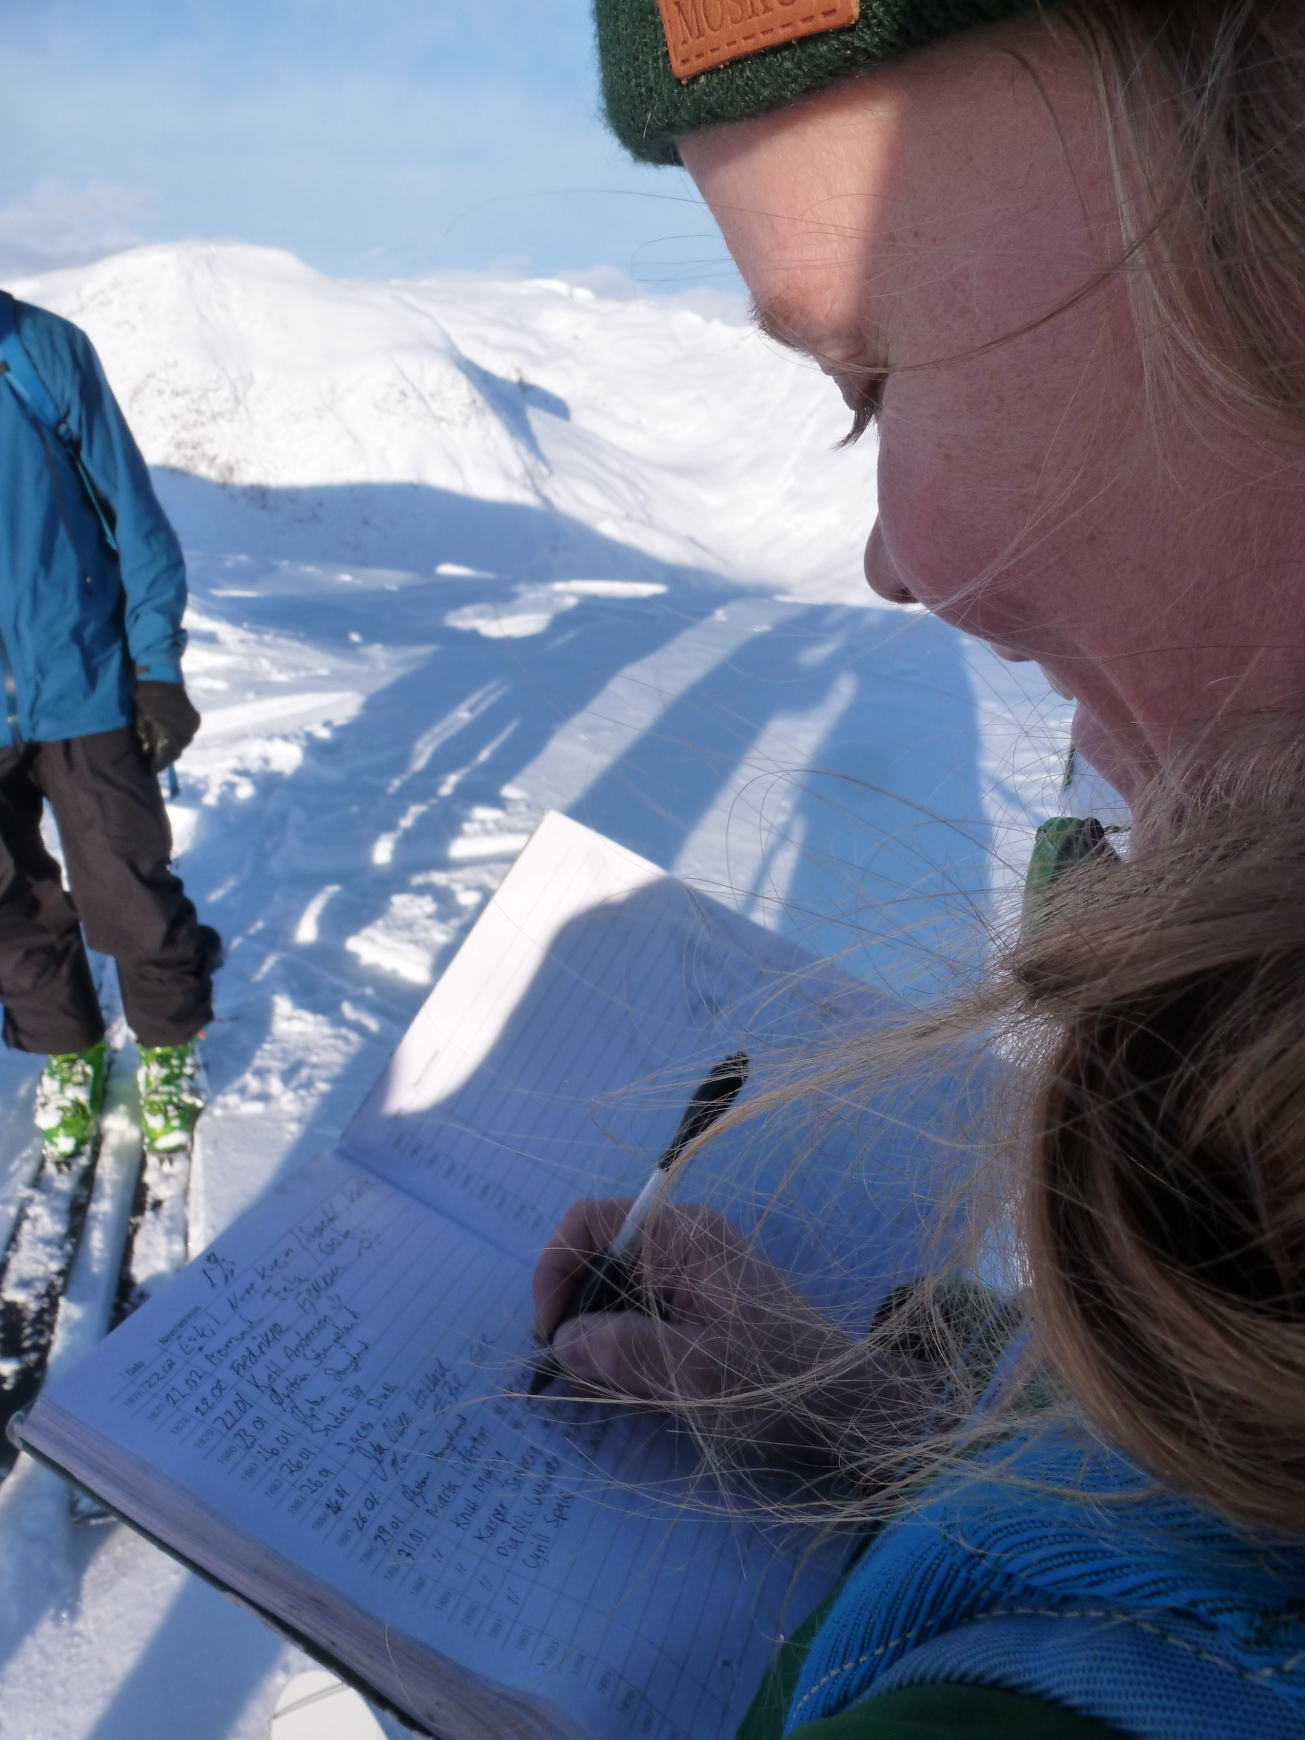 """Marta Lidstrom writing our names in the book on the top of """"Togga""""."""